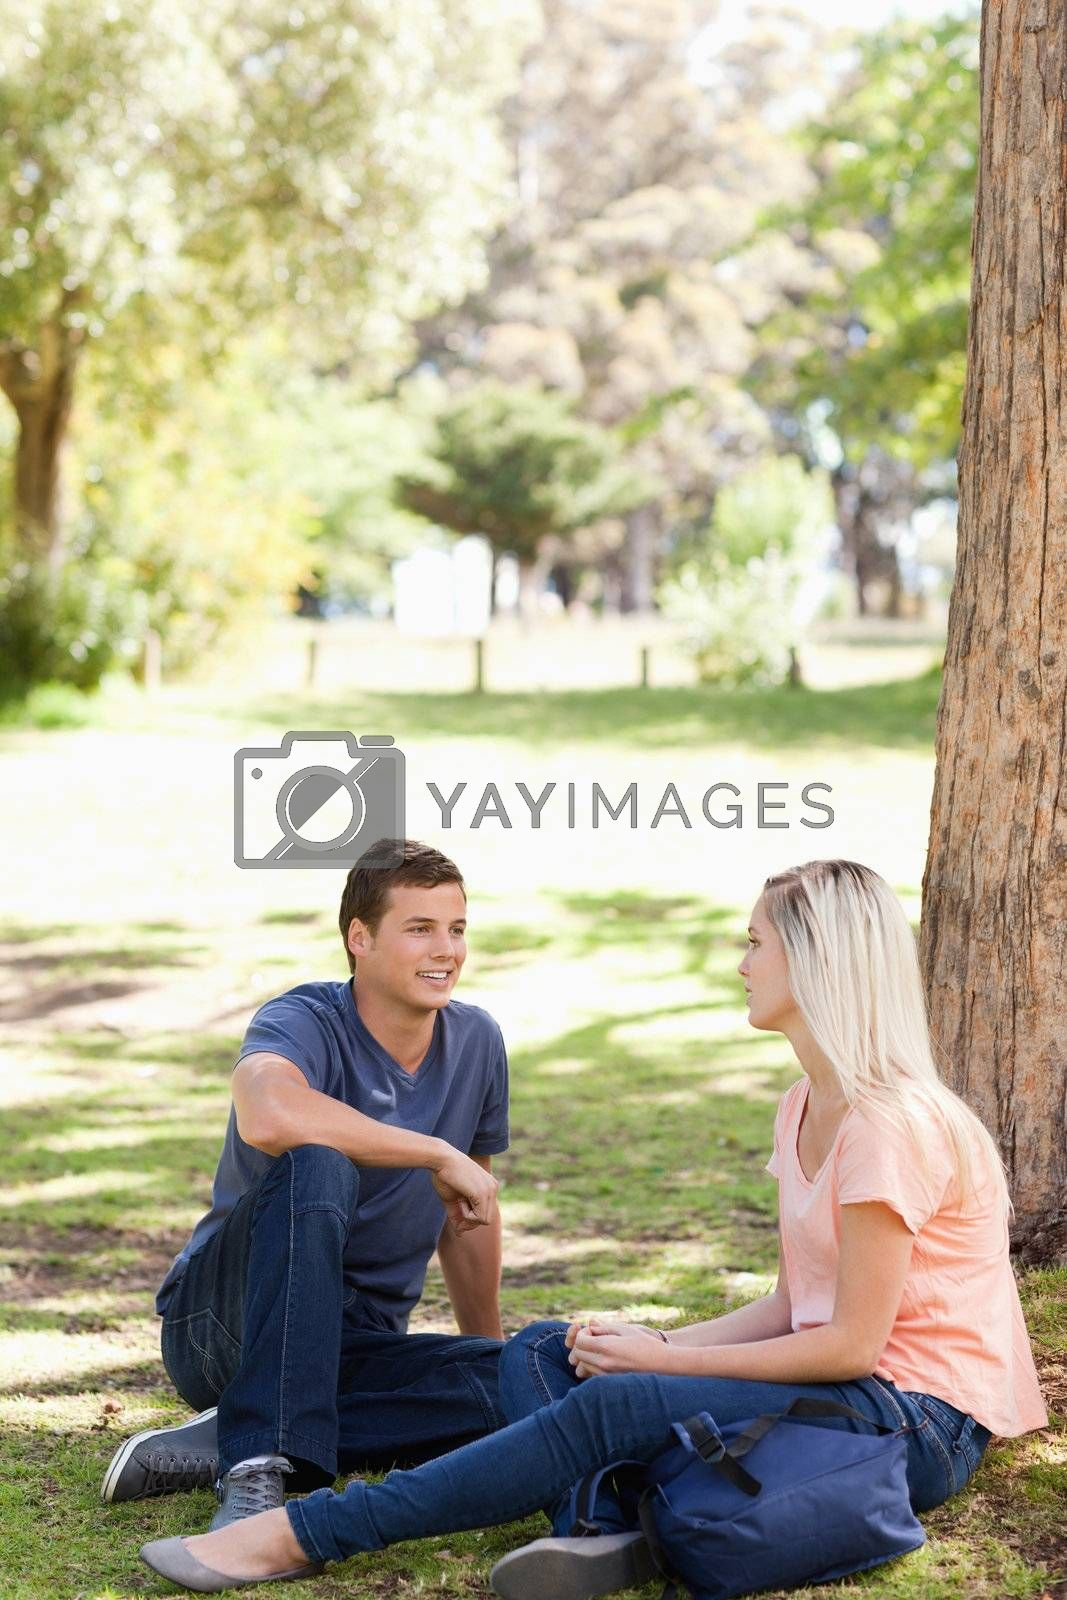 Students flirting in a park